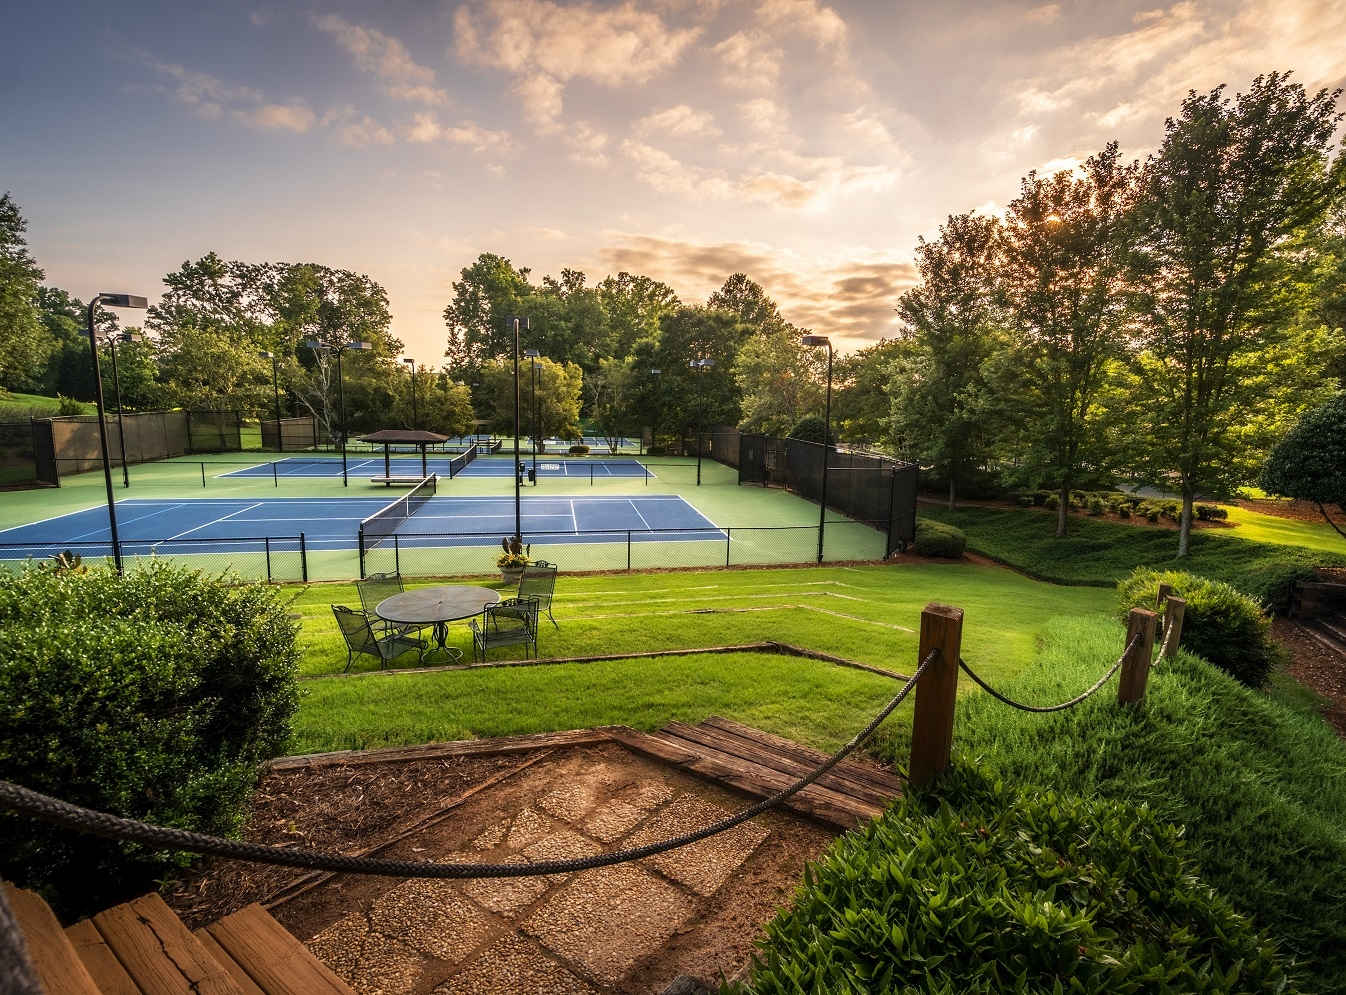 CLIFF DRYSDALE TENNIS SELECTED TO MANAGE OPERATIONS  AT CHÂTEAU ÉLAN RACQUET CLUB